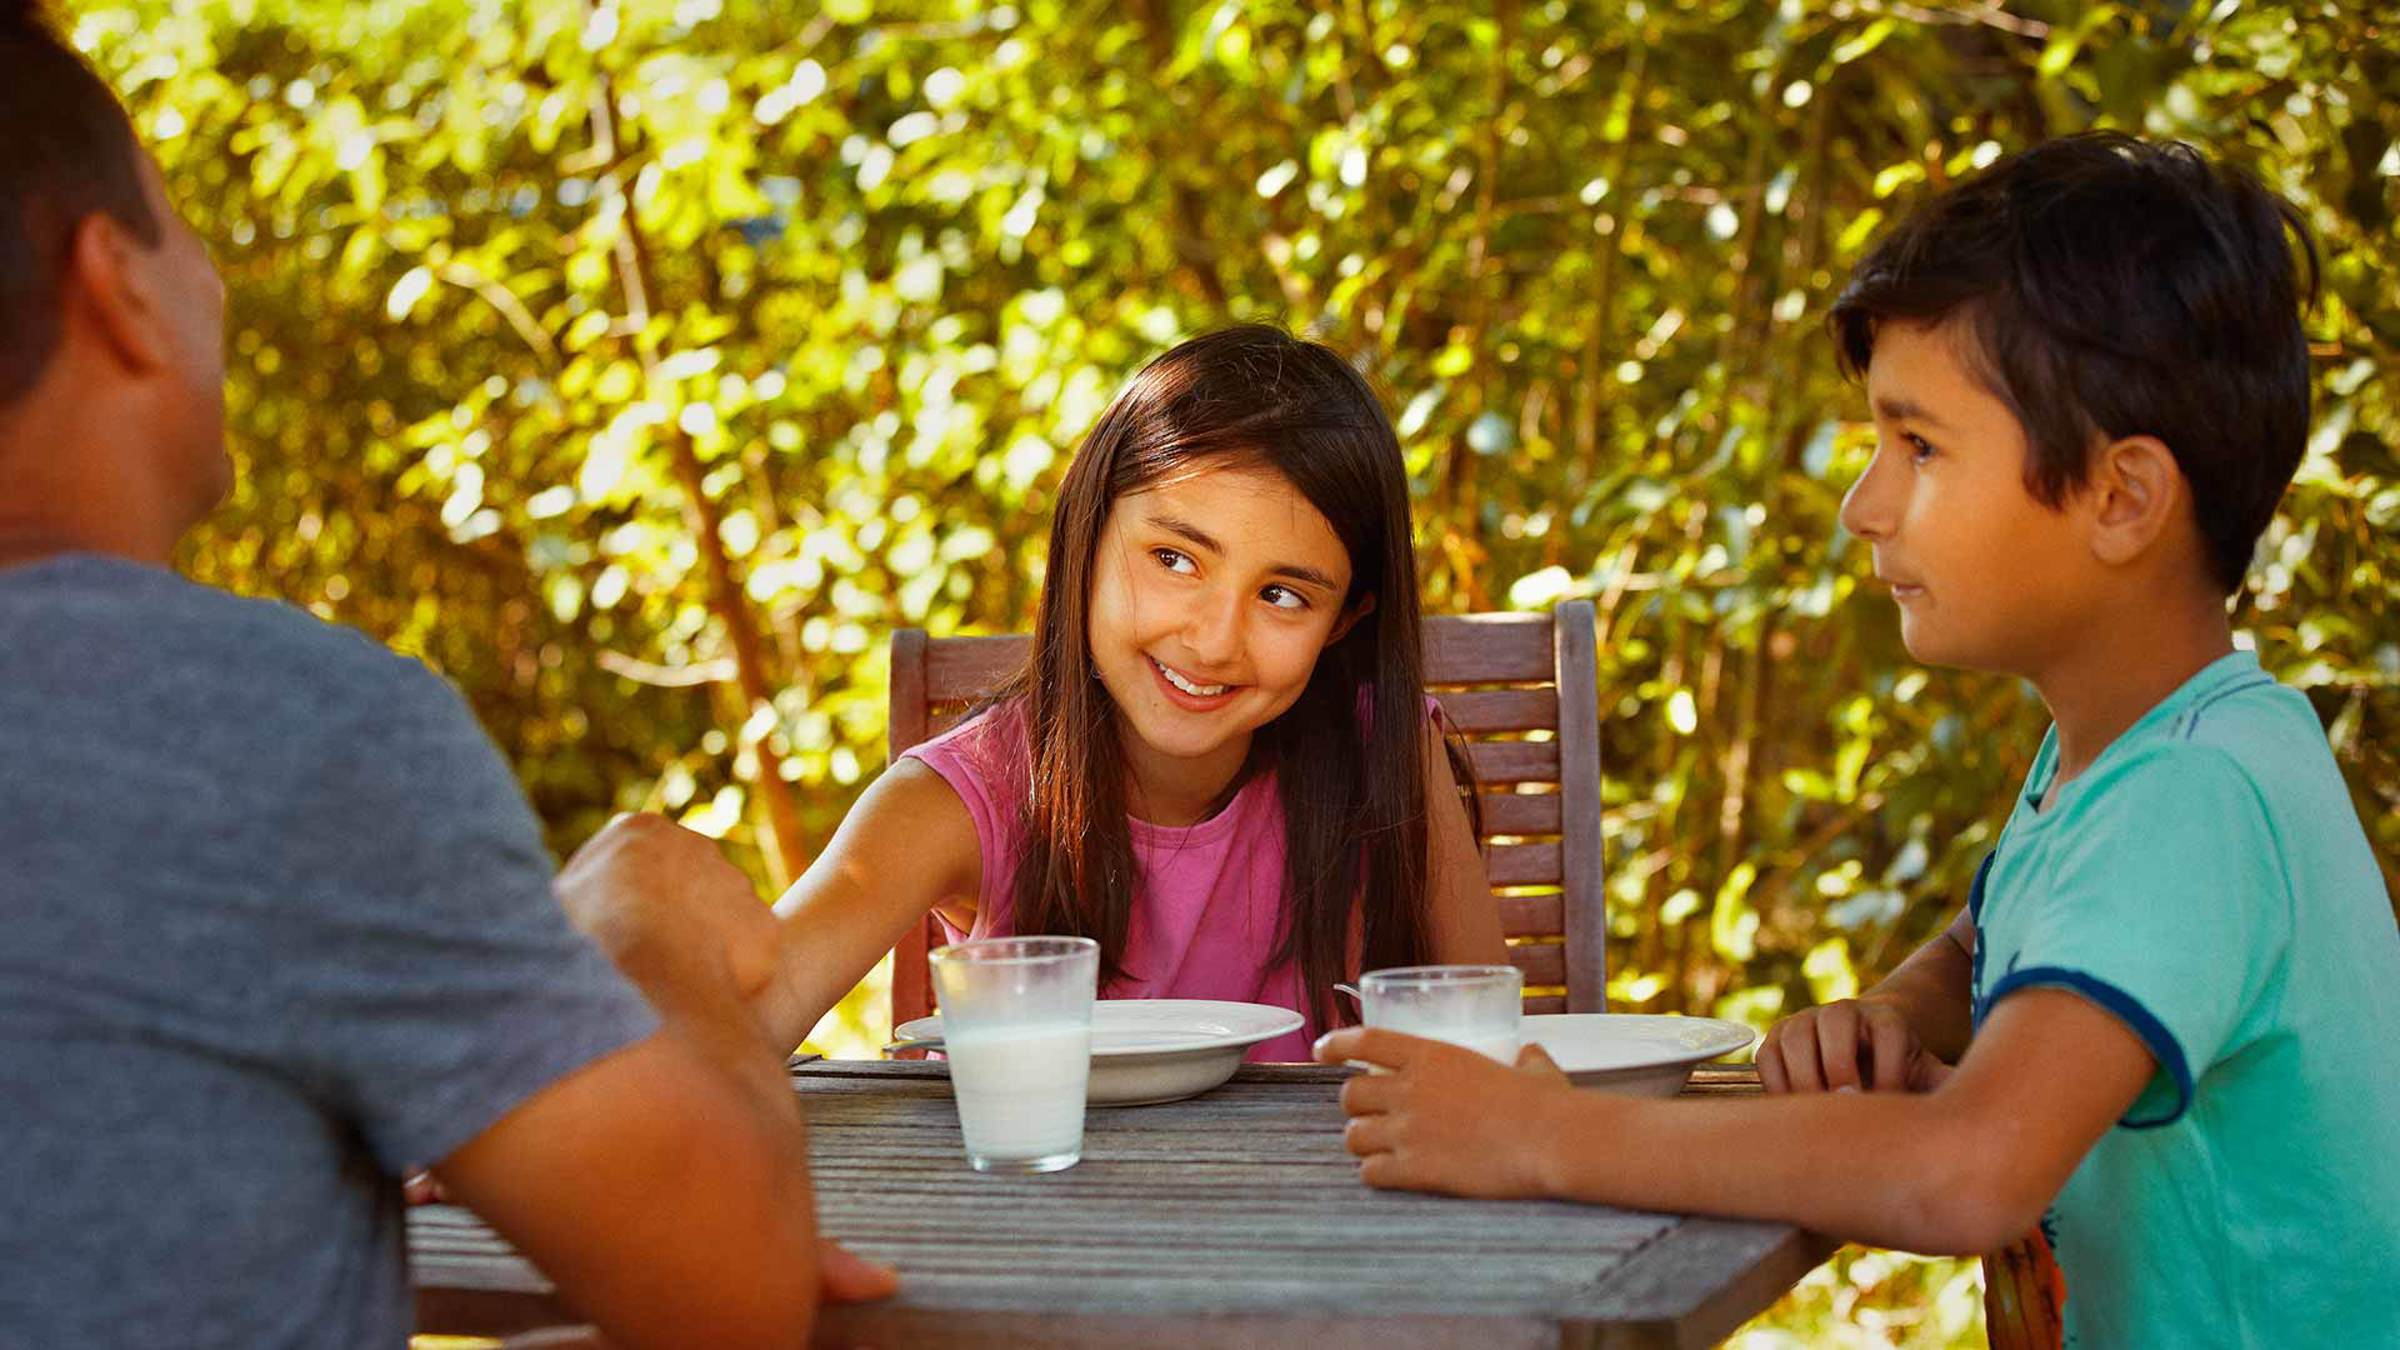 Children smiling at an outdoor dinner table